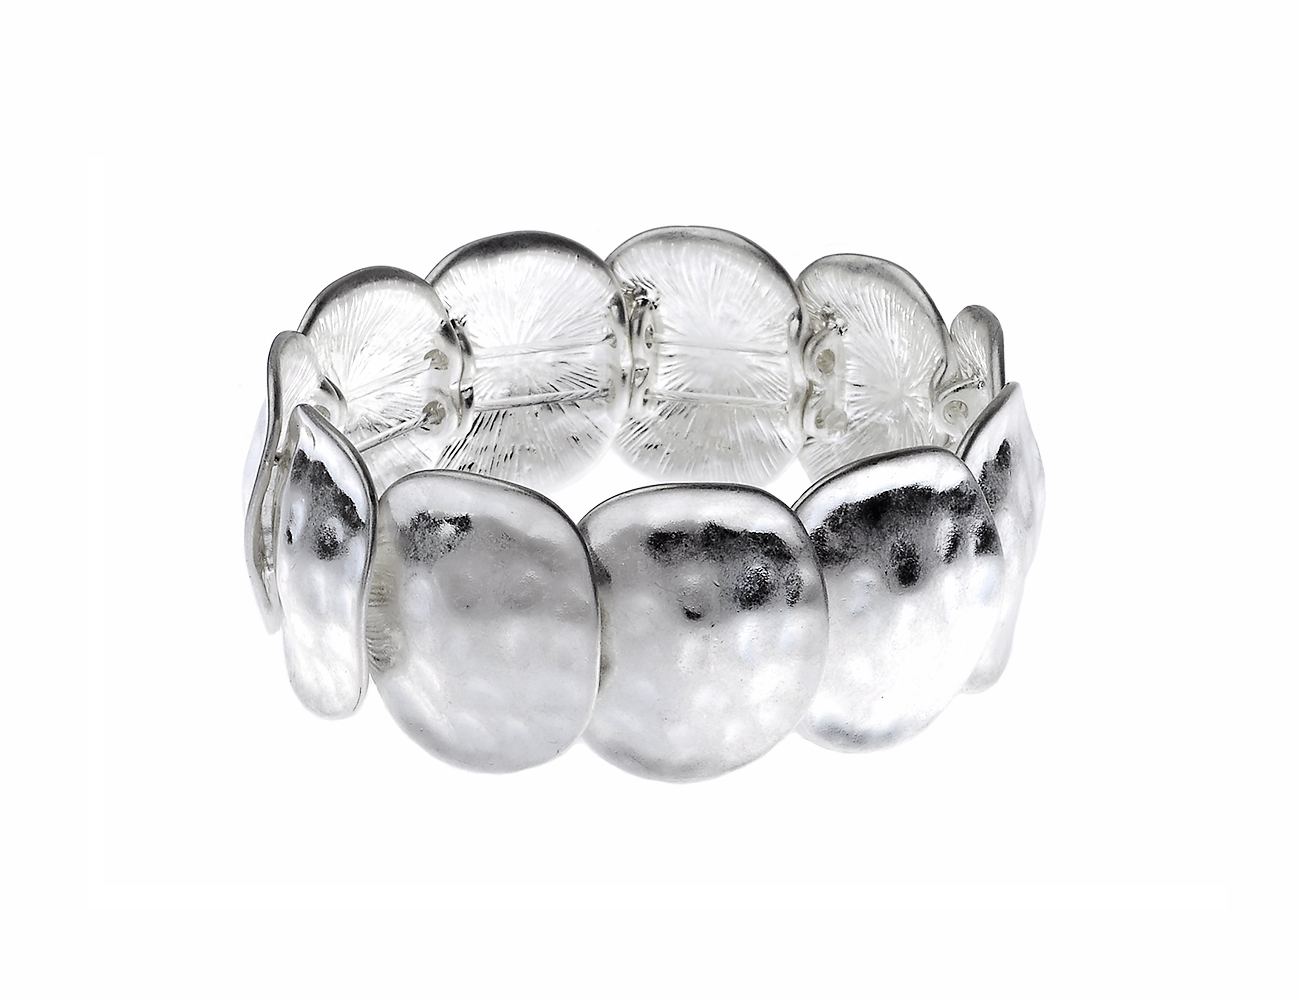 Chunky Worn Silver Bracelet with Hammered Rounded Shapes Design